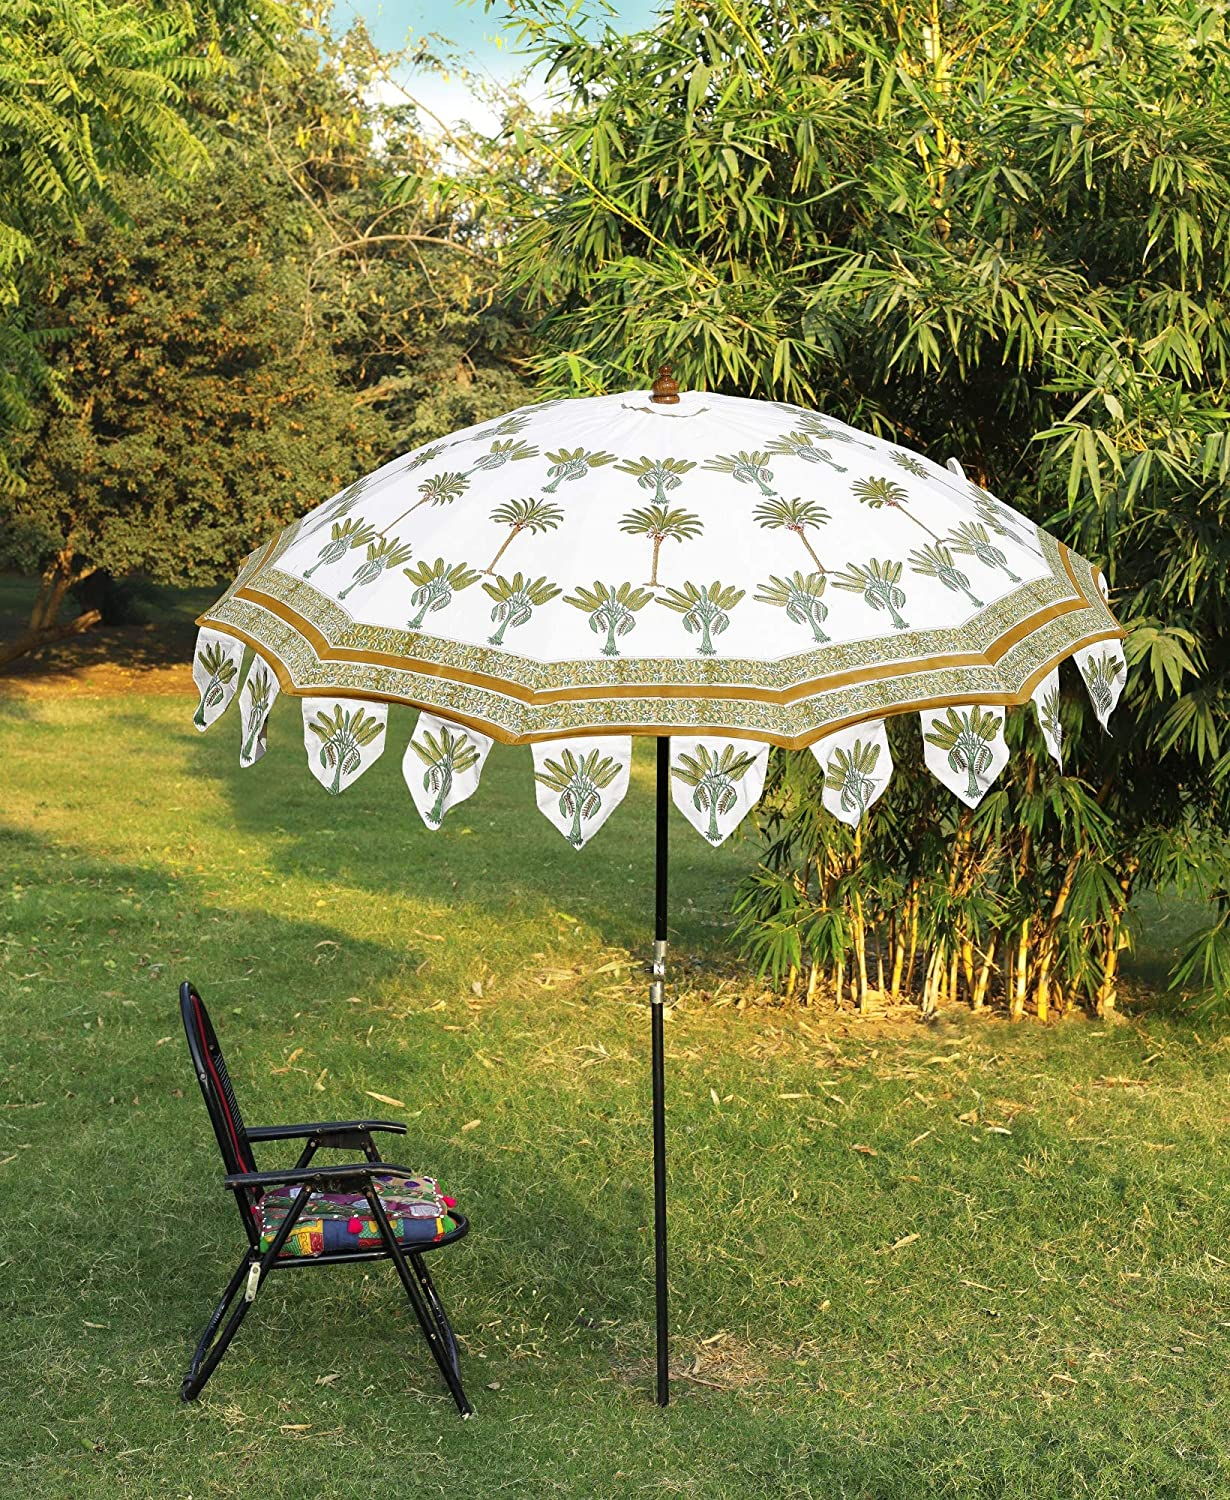 Collection of Best Outdoor Umbrella Decor This Year that you must See @house2homegoods.net